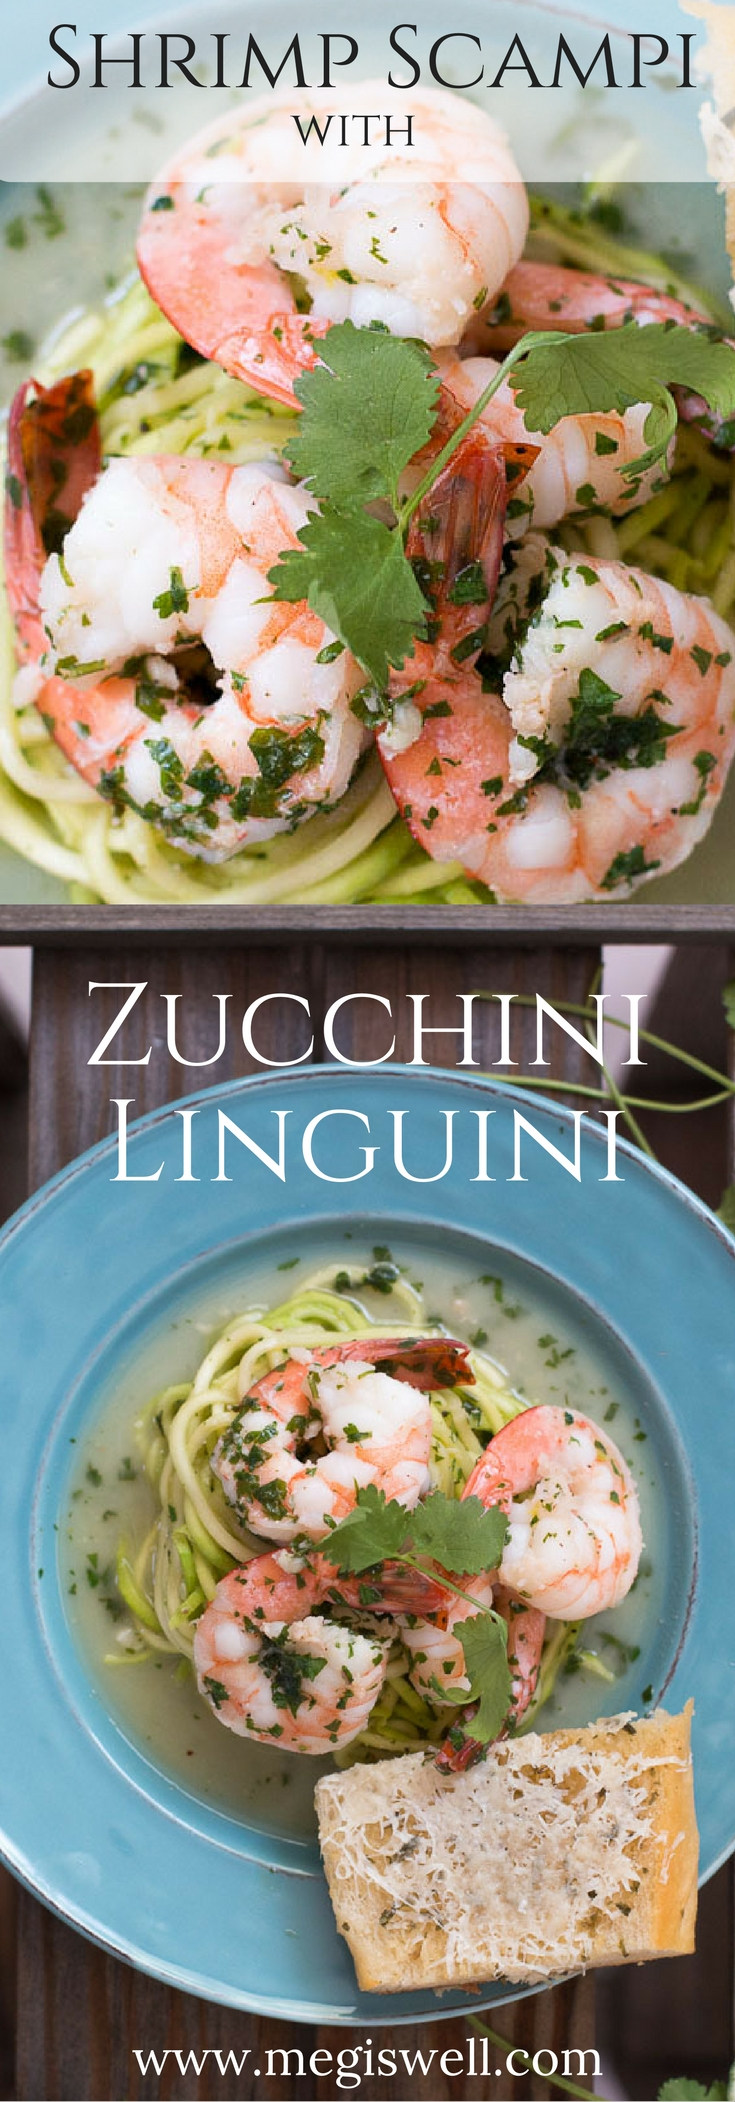 This Shrimp Scampi with Zucchini Linguini is super light and easy but feels fancy. Bursts of cilantro and lime make this a great fresh meal to serve on a hot day with a glass of chilled wine.   www.megiswell.com